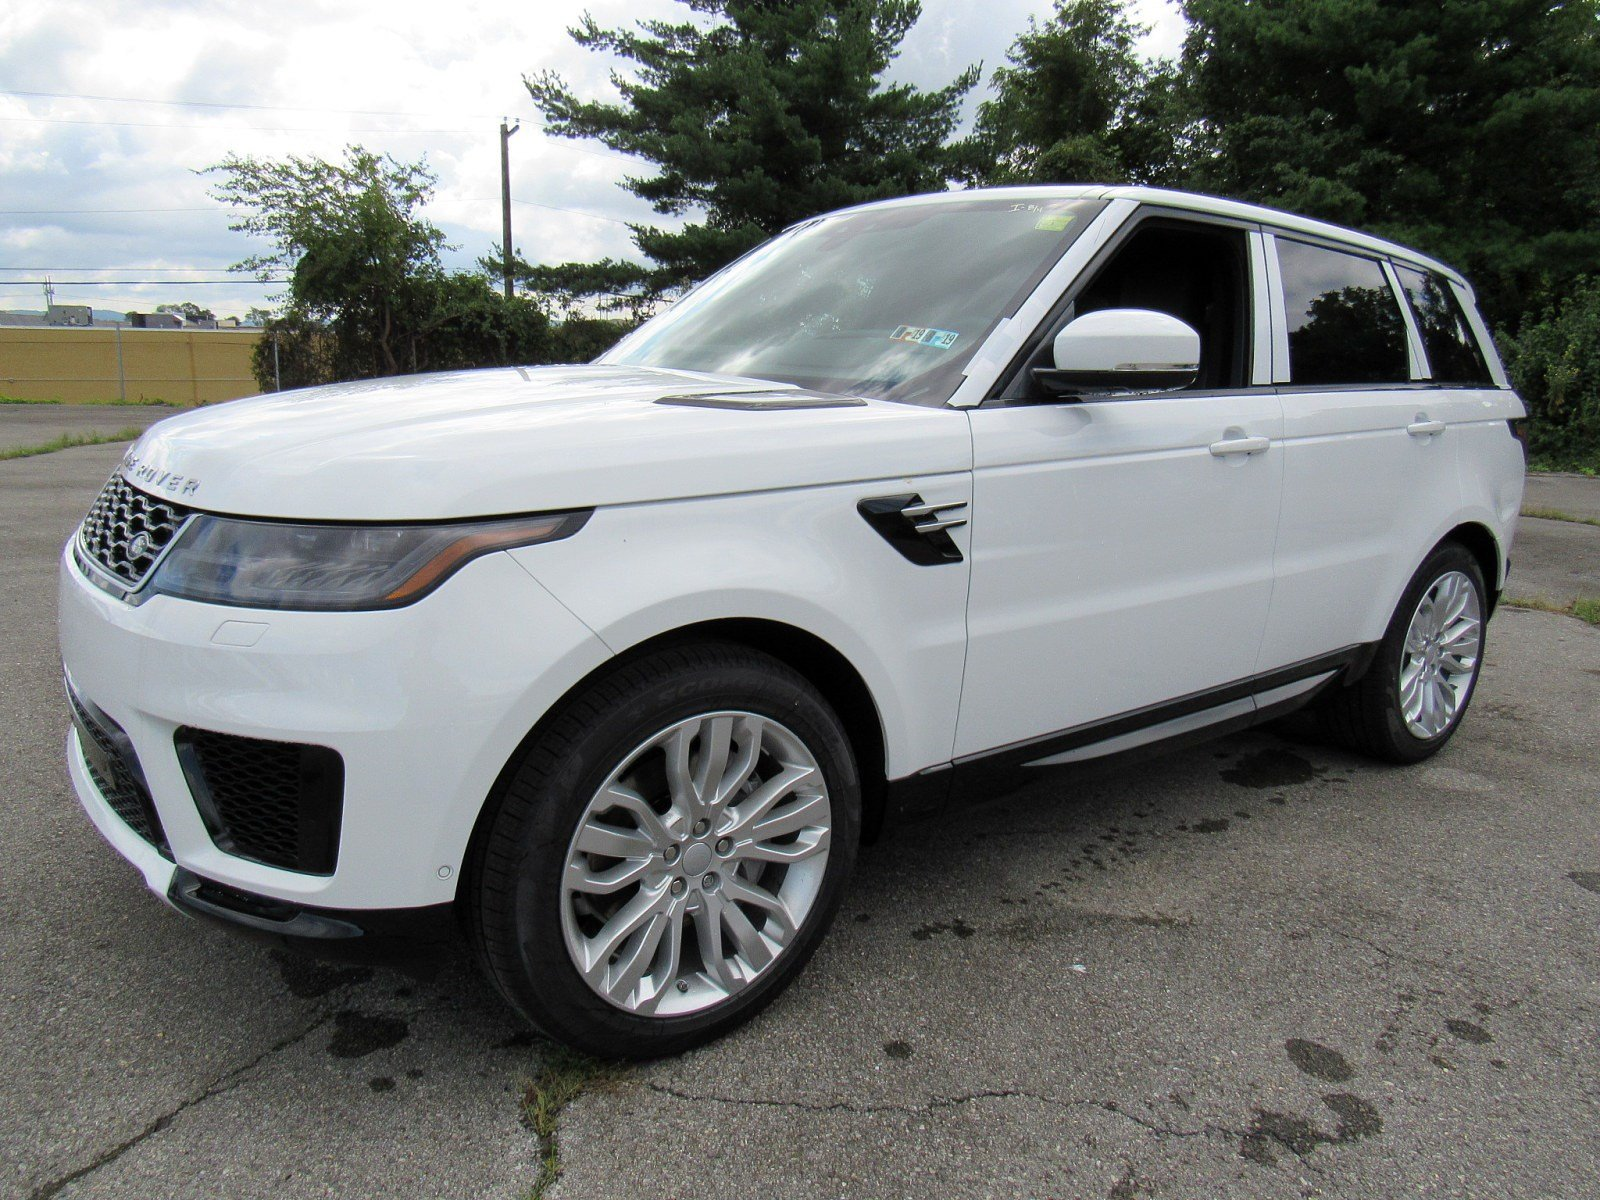 New 2018 Land Rover Range Sport Hse 4 Door In Allentown L4523 2007 Supercharged Firing Order With Diagrams And Images